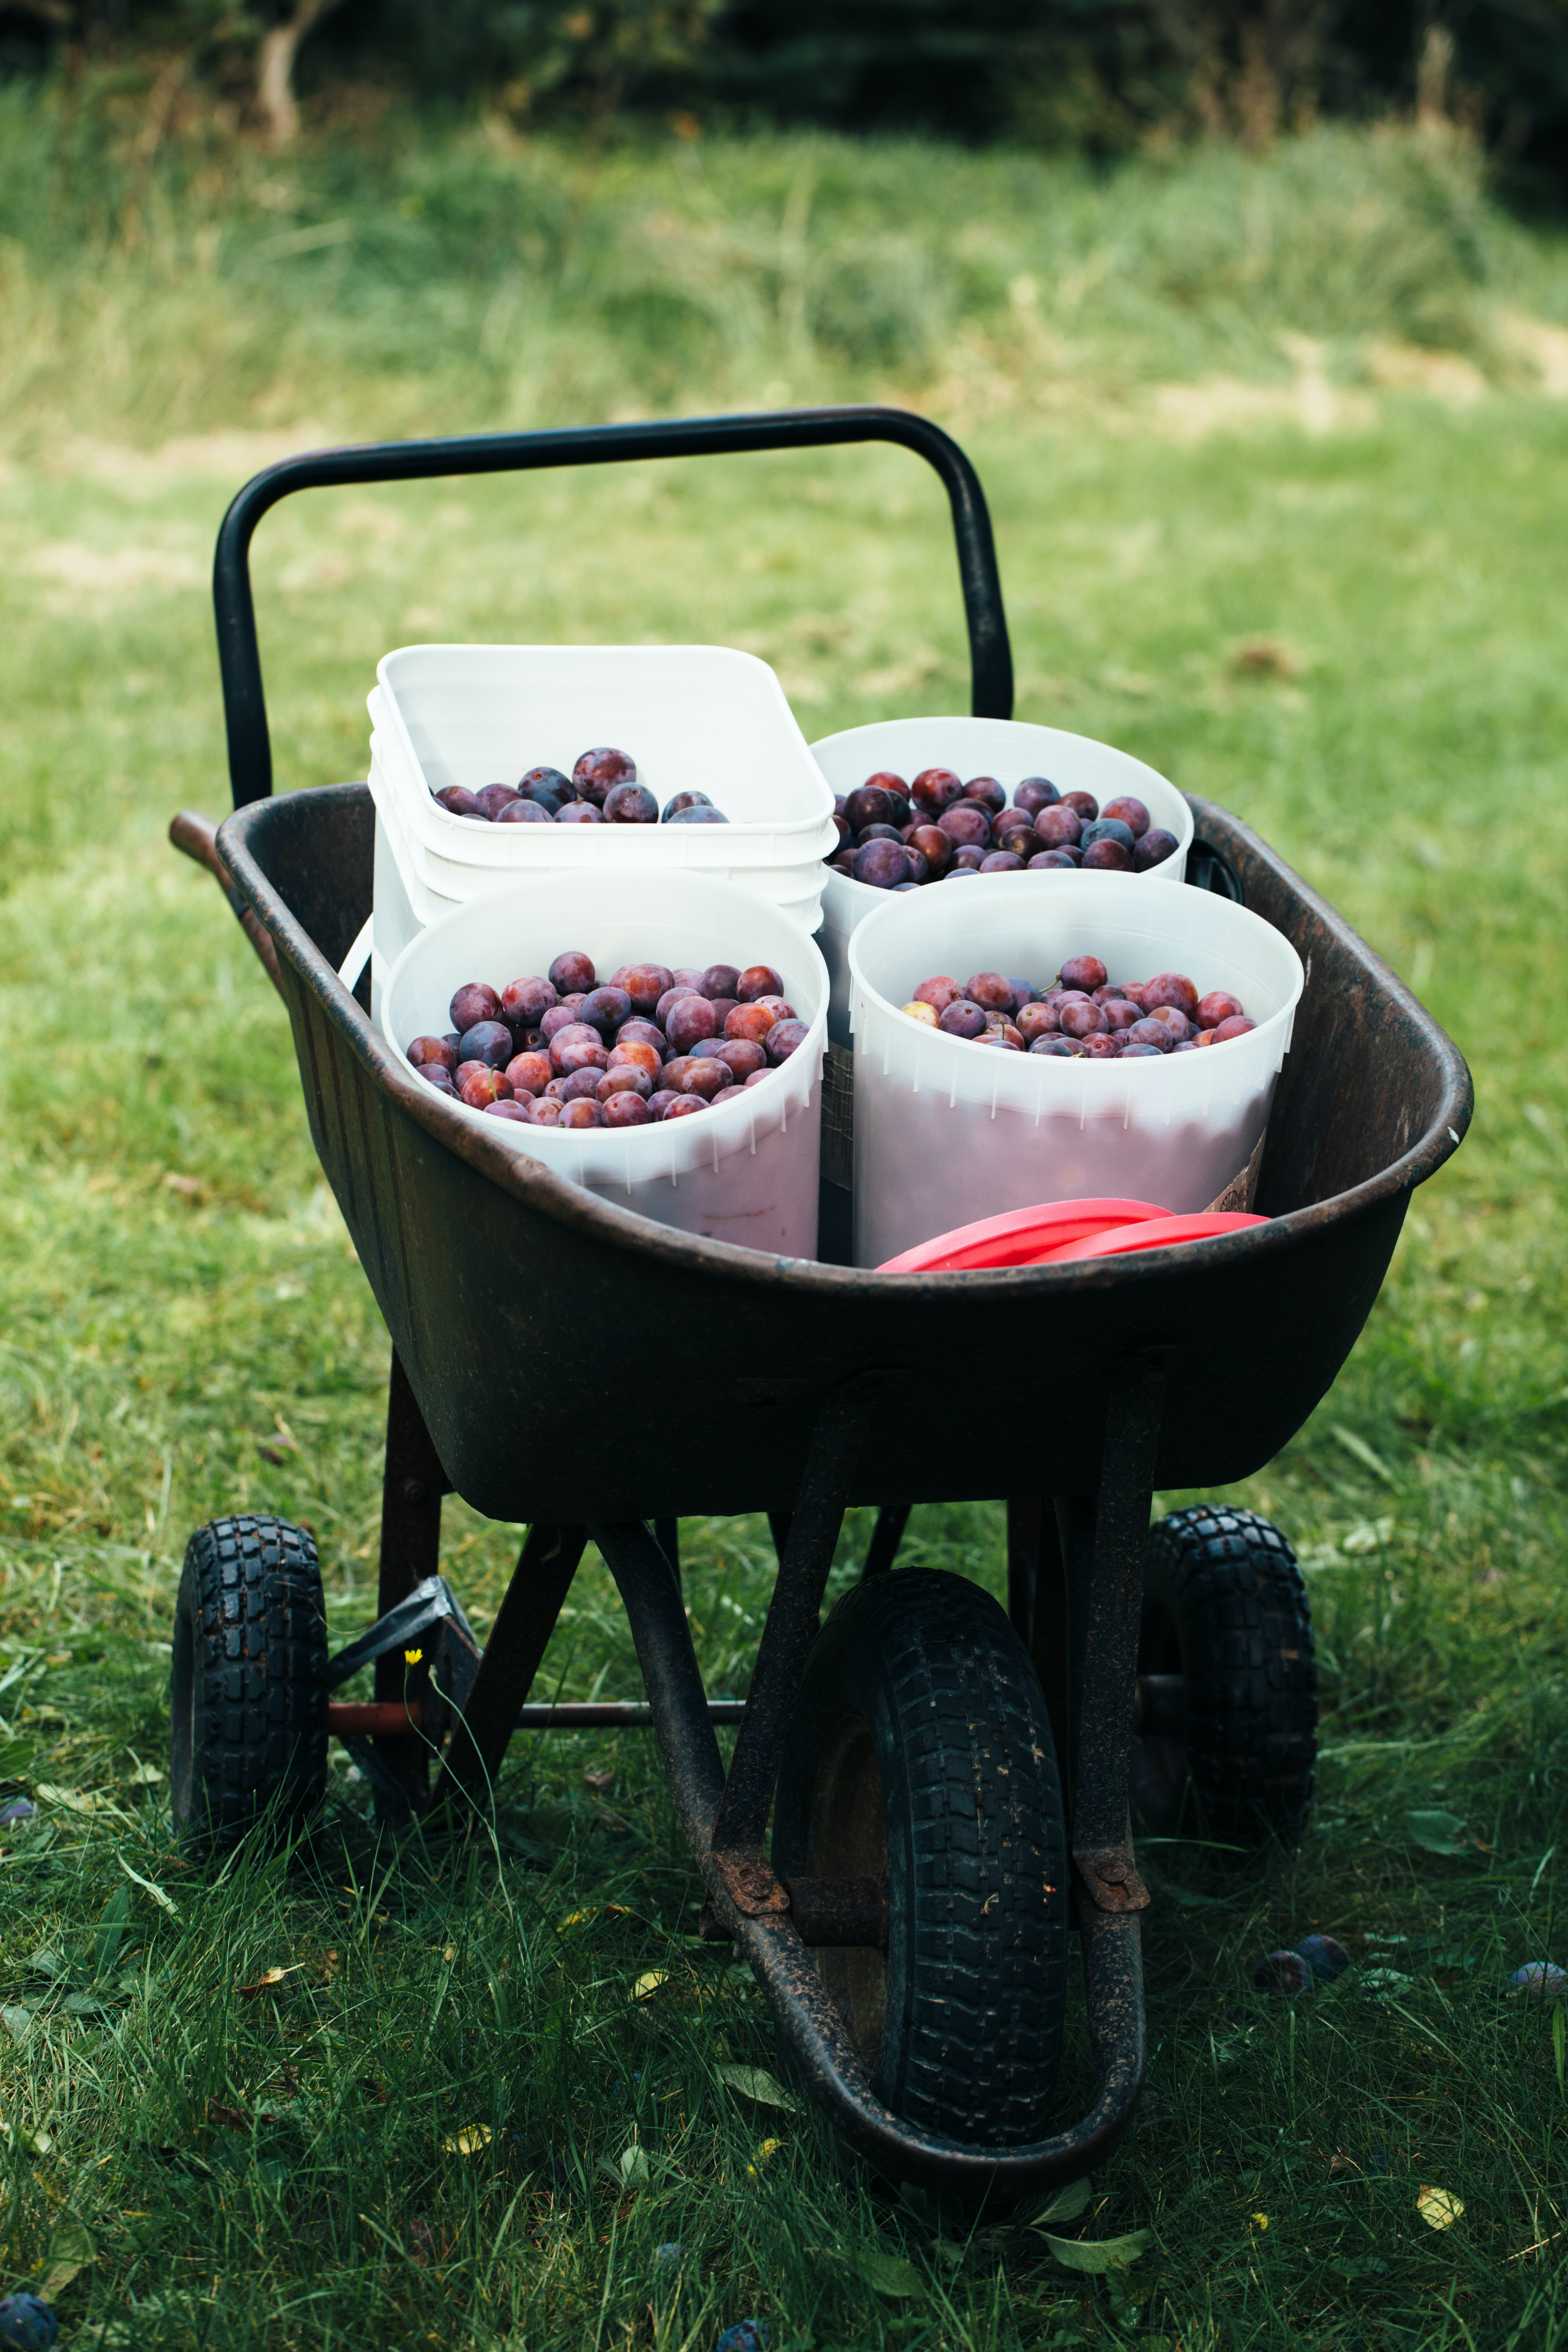 Wheelbarrow or Garden Cart   23 Gardening Tools Every Green Thumb Should Never Be Without